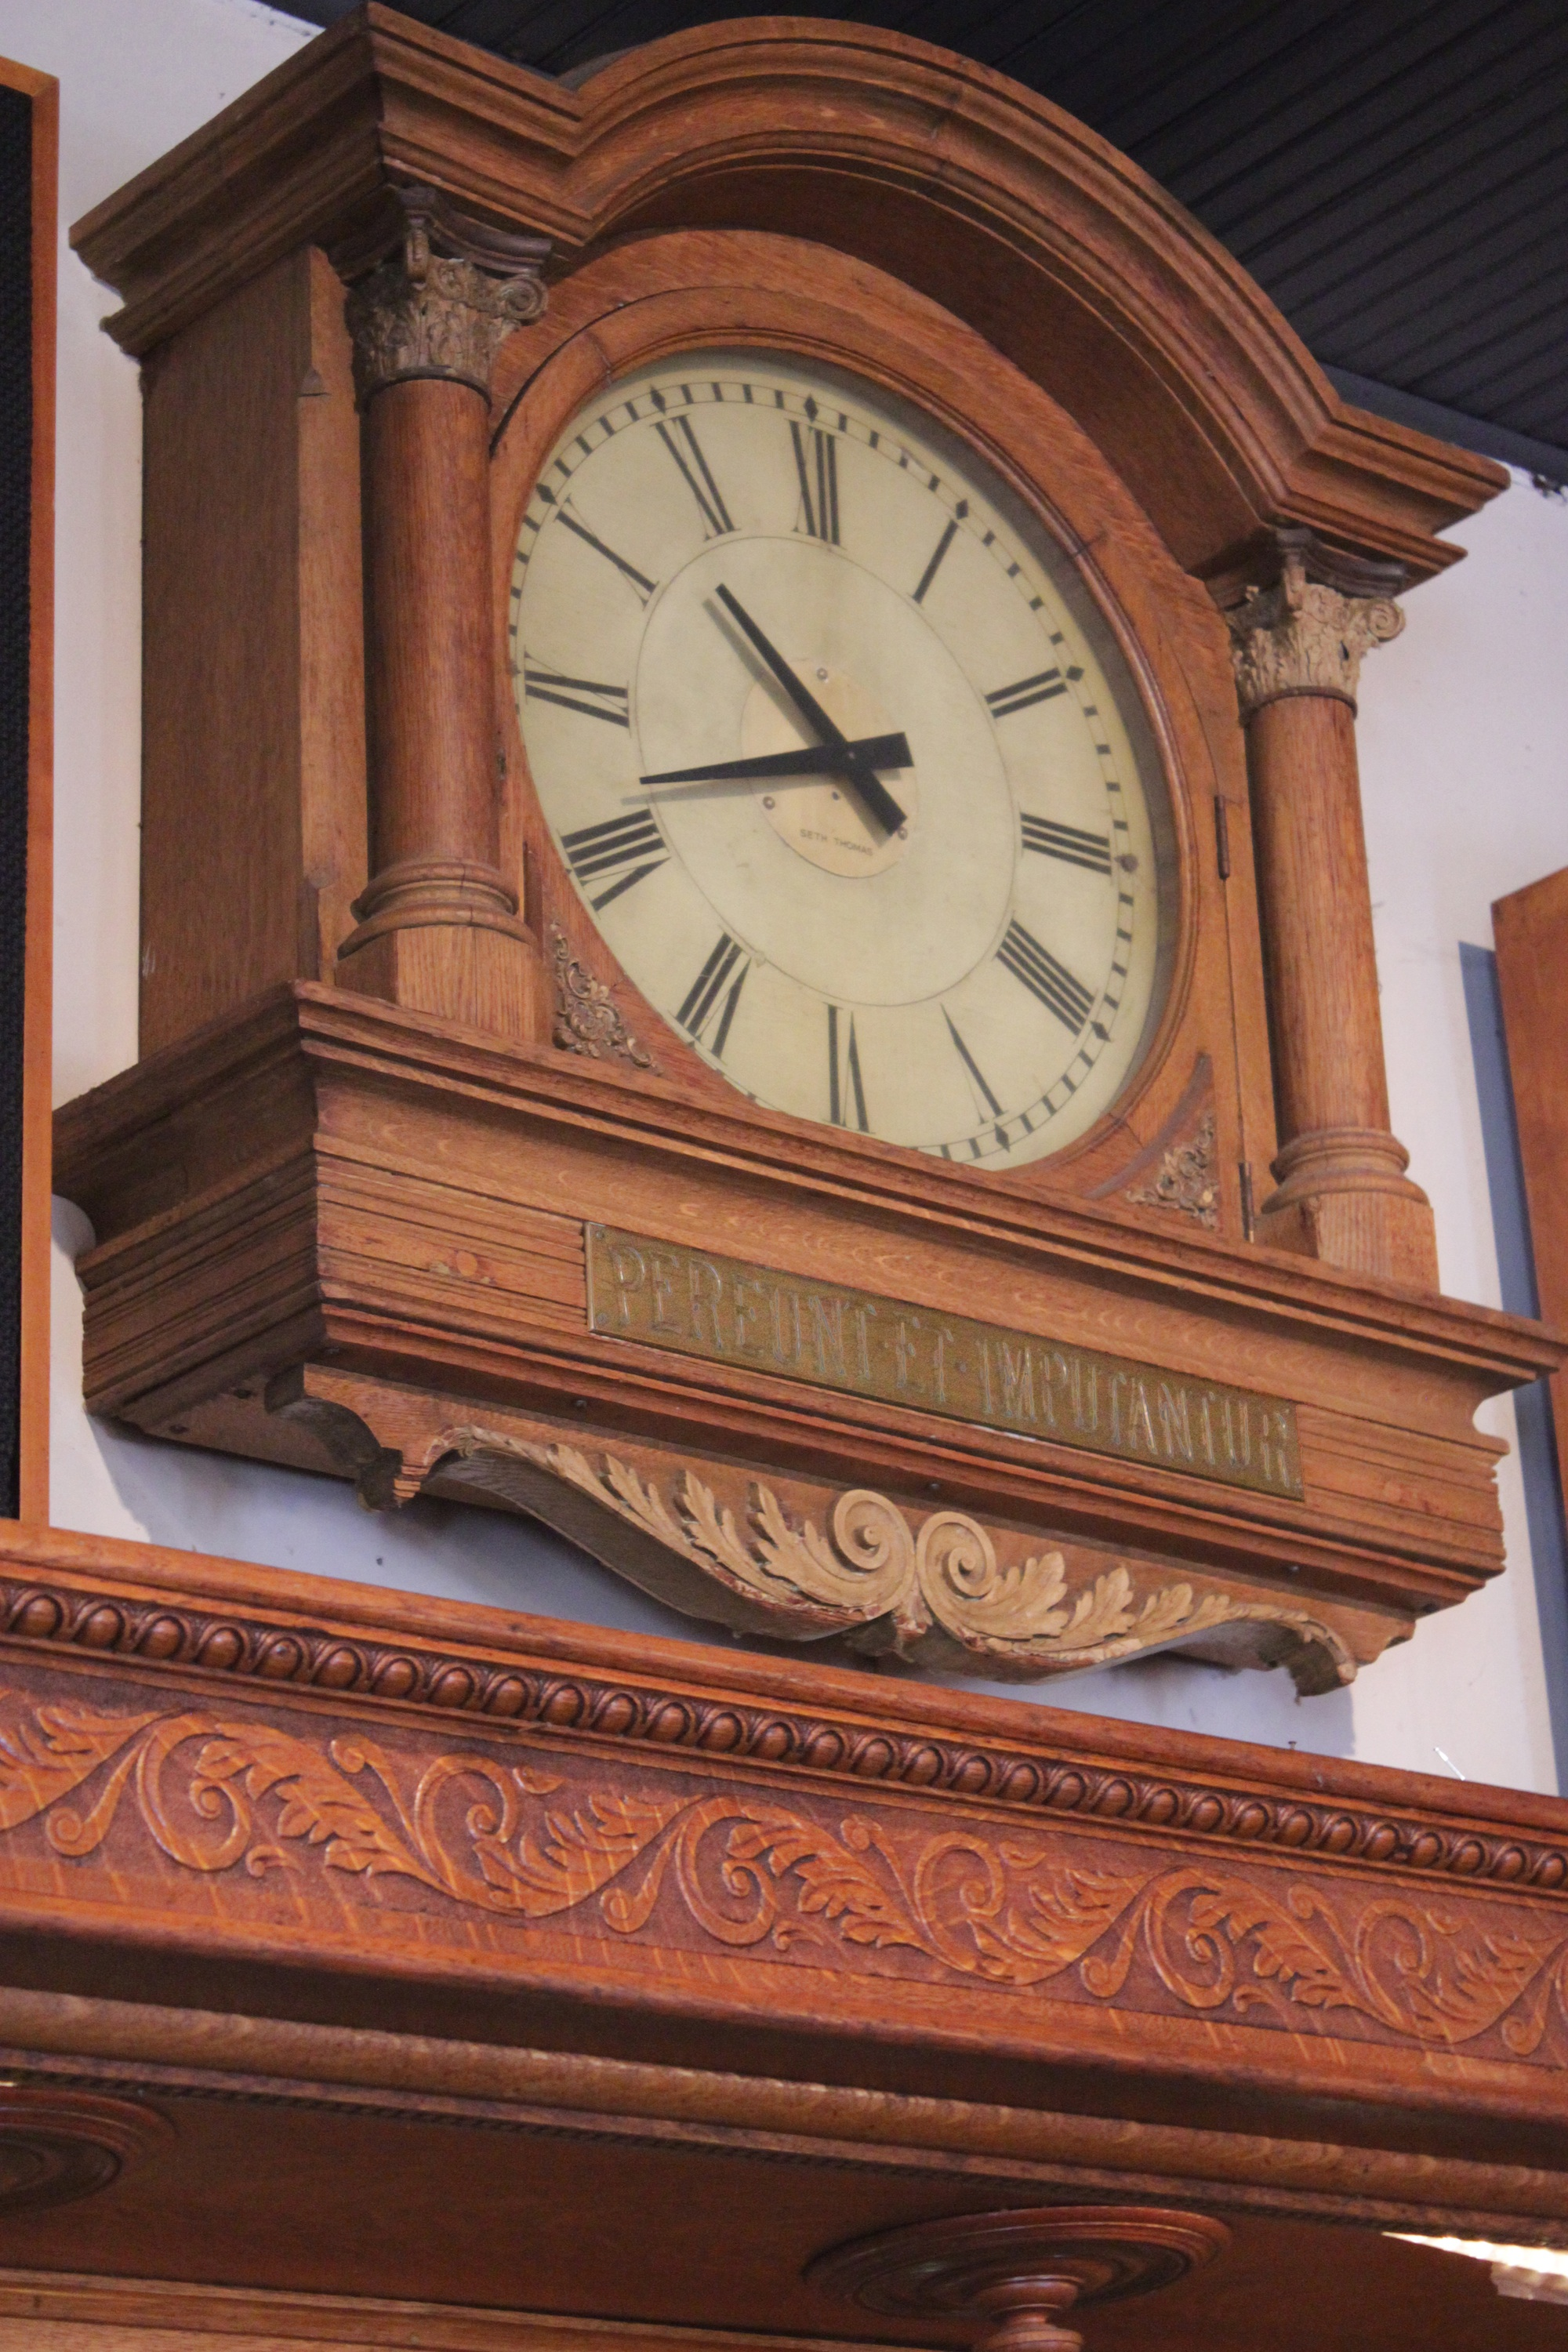 the saying is popular for clocks and sundials alluding to the way we spend our time whether that be wisely or not